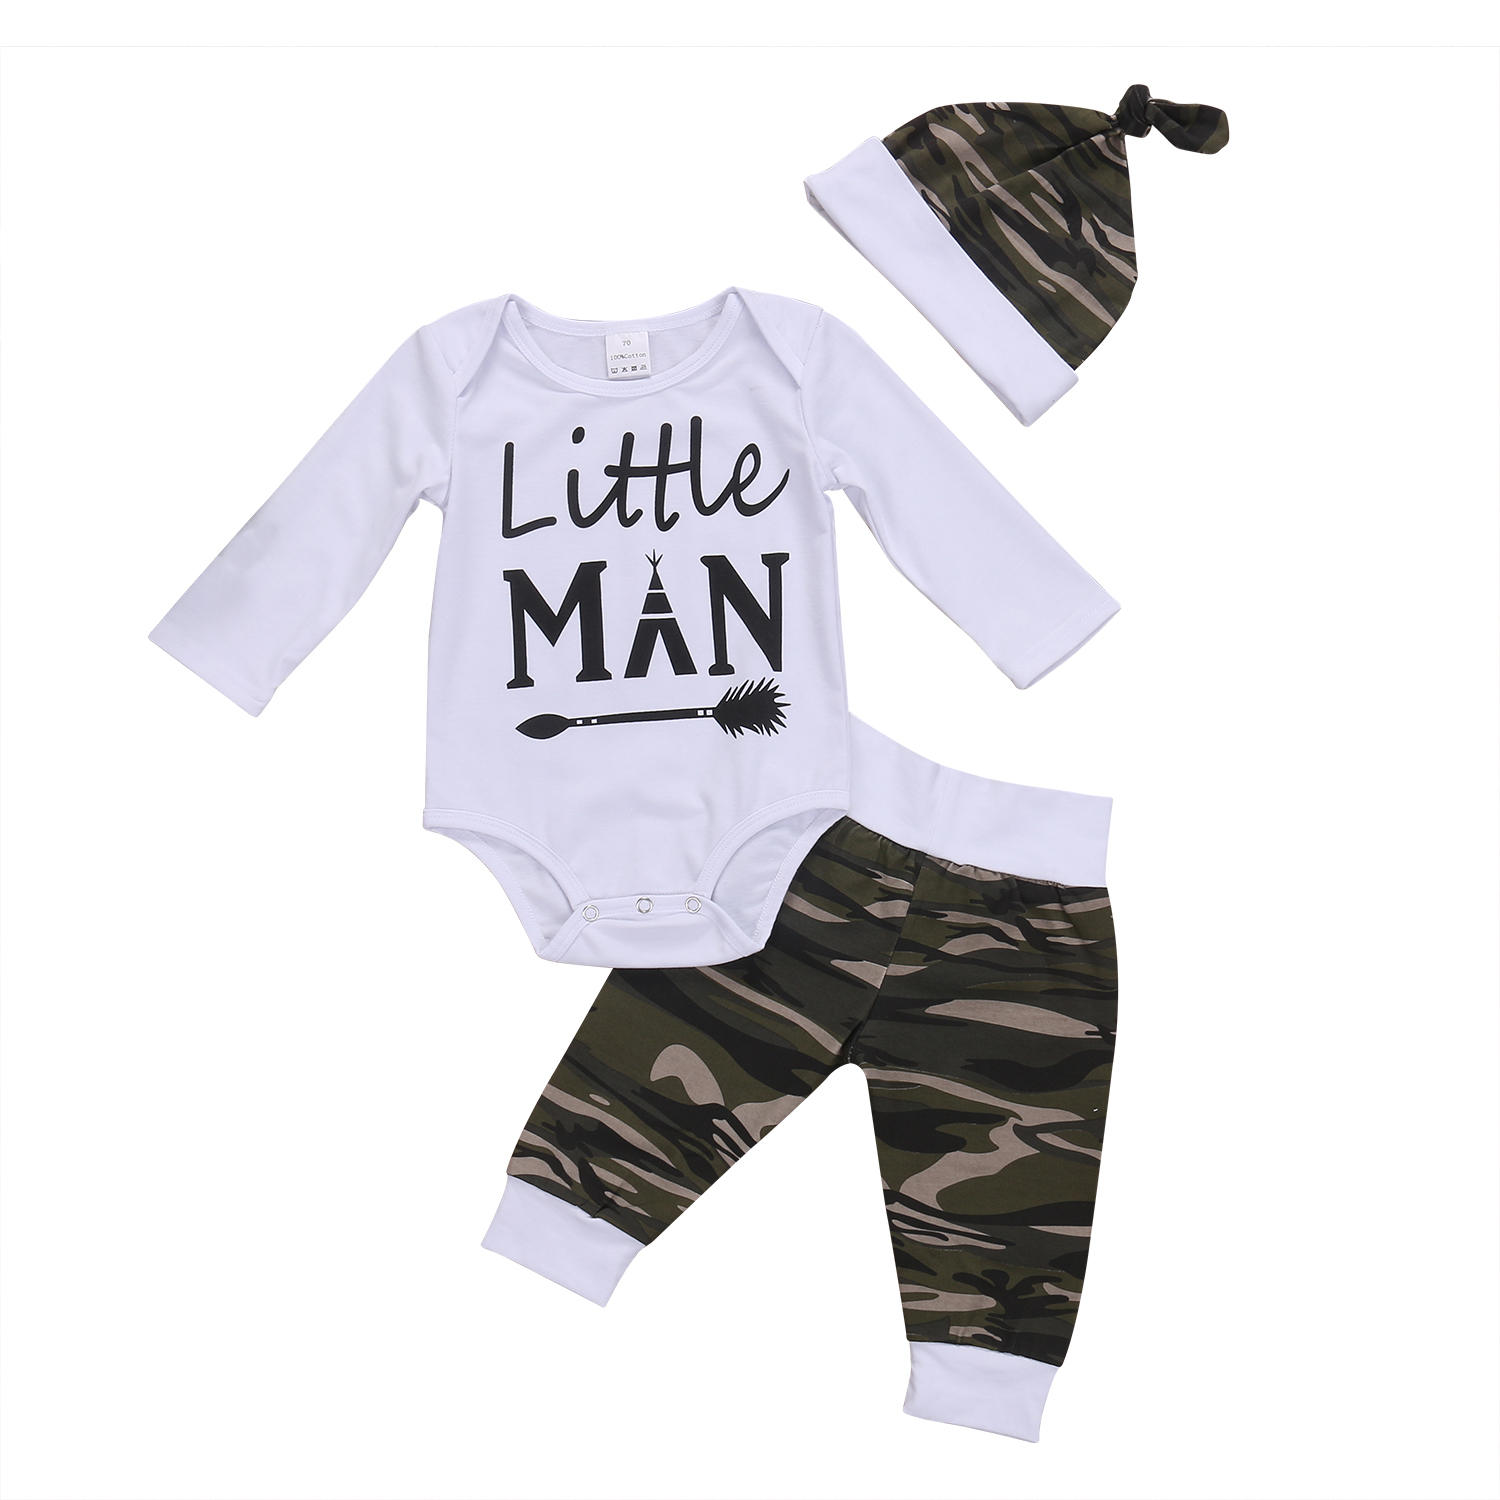 Baby Boy Clothes Set 2017 Autumn Spring New Toddler Baby Boys Camo Tops Long Sleeve Bodysuit Pants Hat 3Pcs Outfits Set Clothes 0 24m newborn infant baby boy girl clothes set romper bodysuit tops rainbow long pants hat 3pcs toddler winter fall outfits